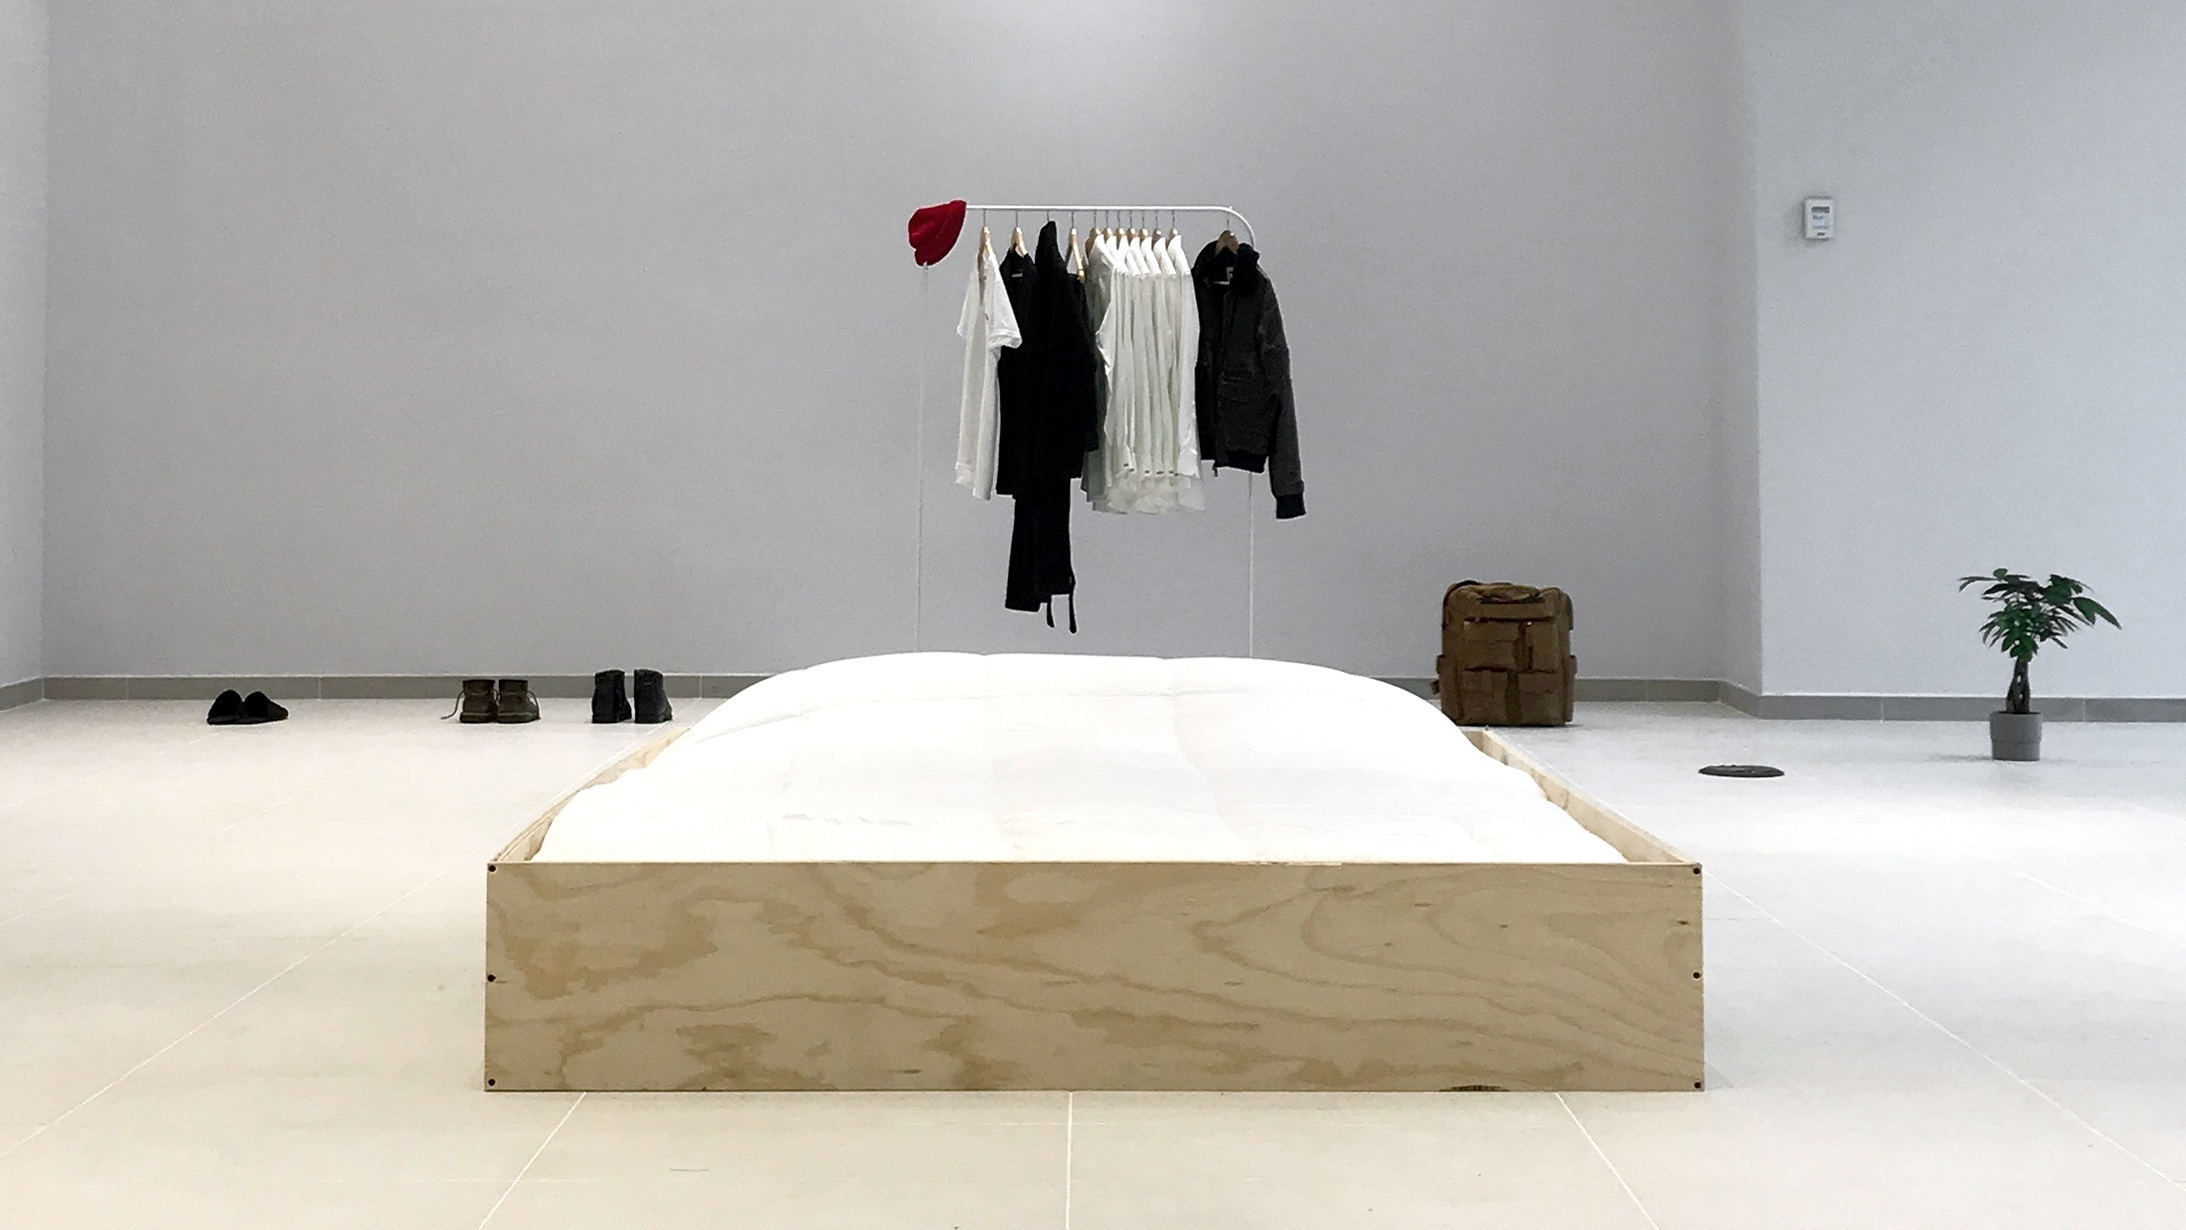 The present_Study01-A traveling exhibition + retail pop-up project where Rodriguez constructs an environment that he lives in publicly as a work of art.